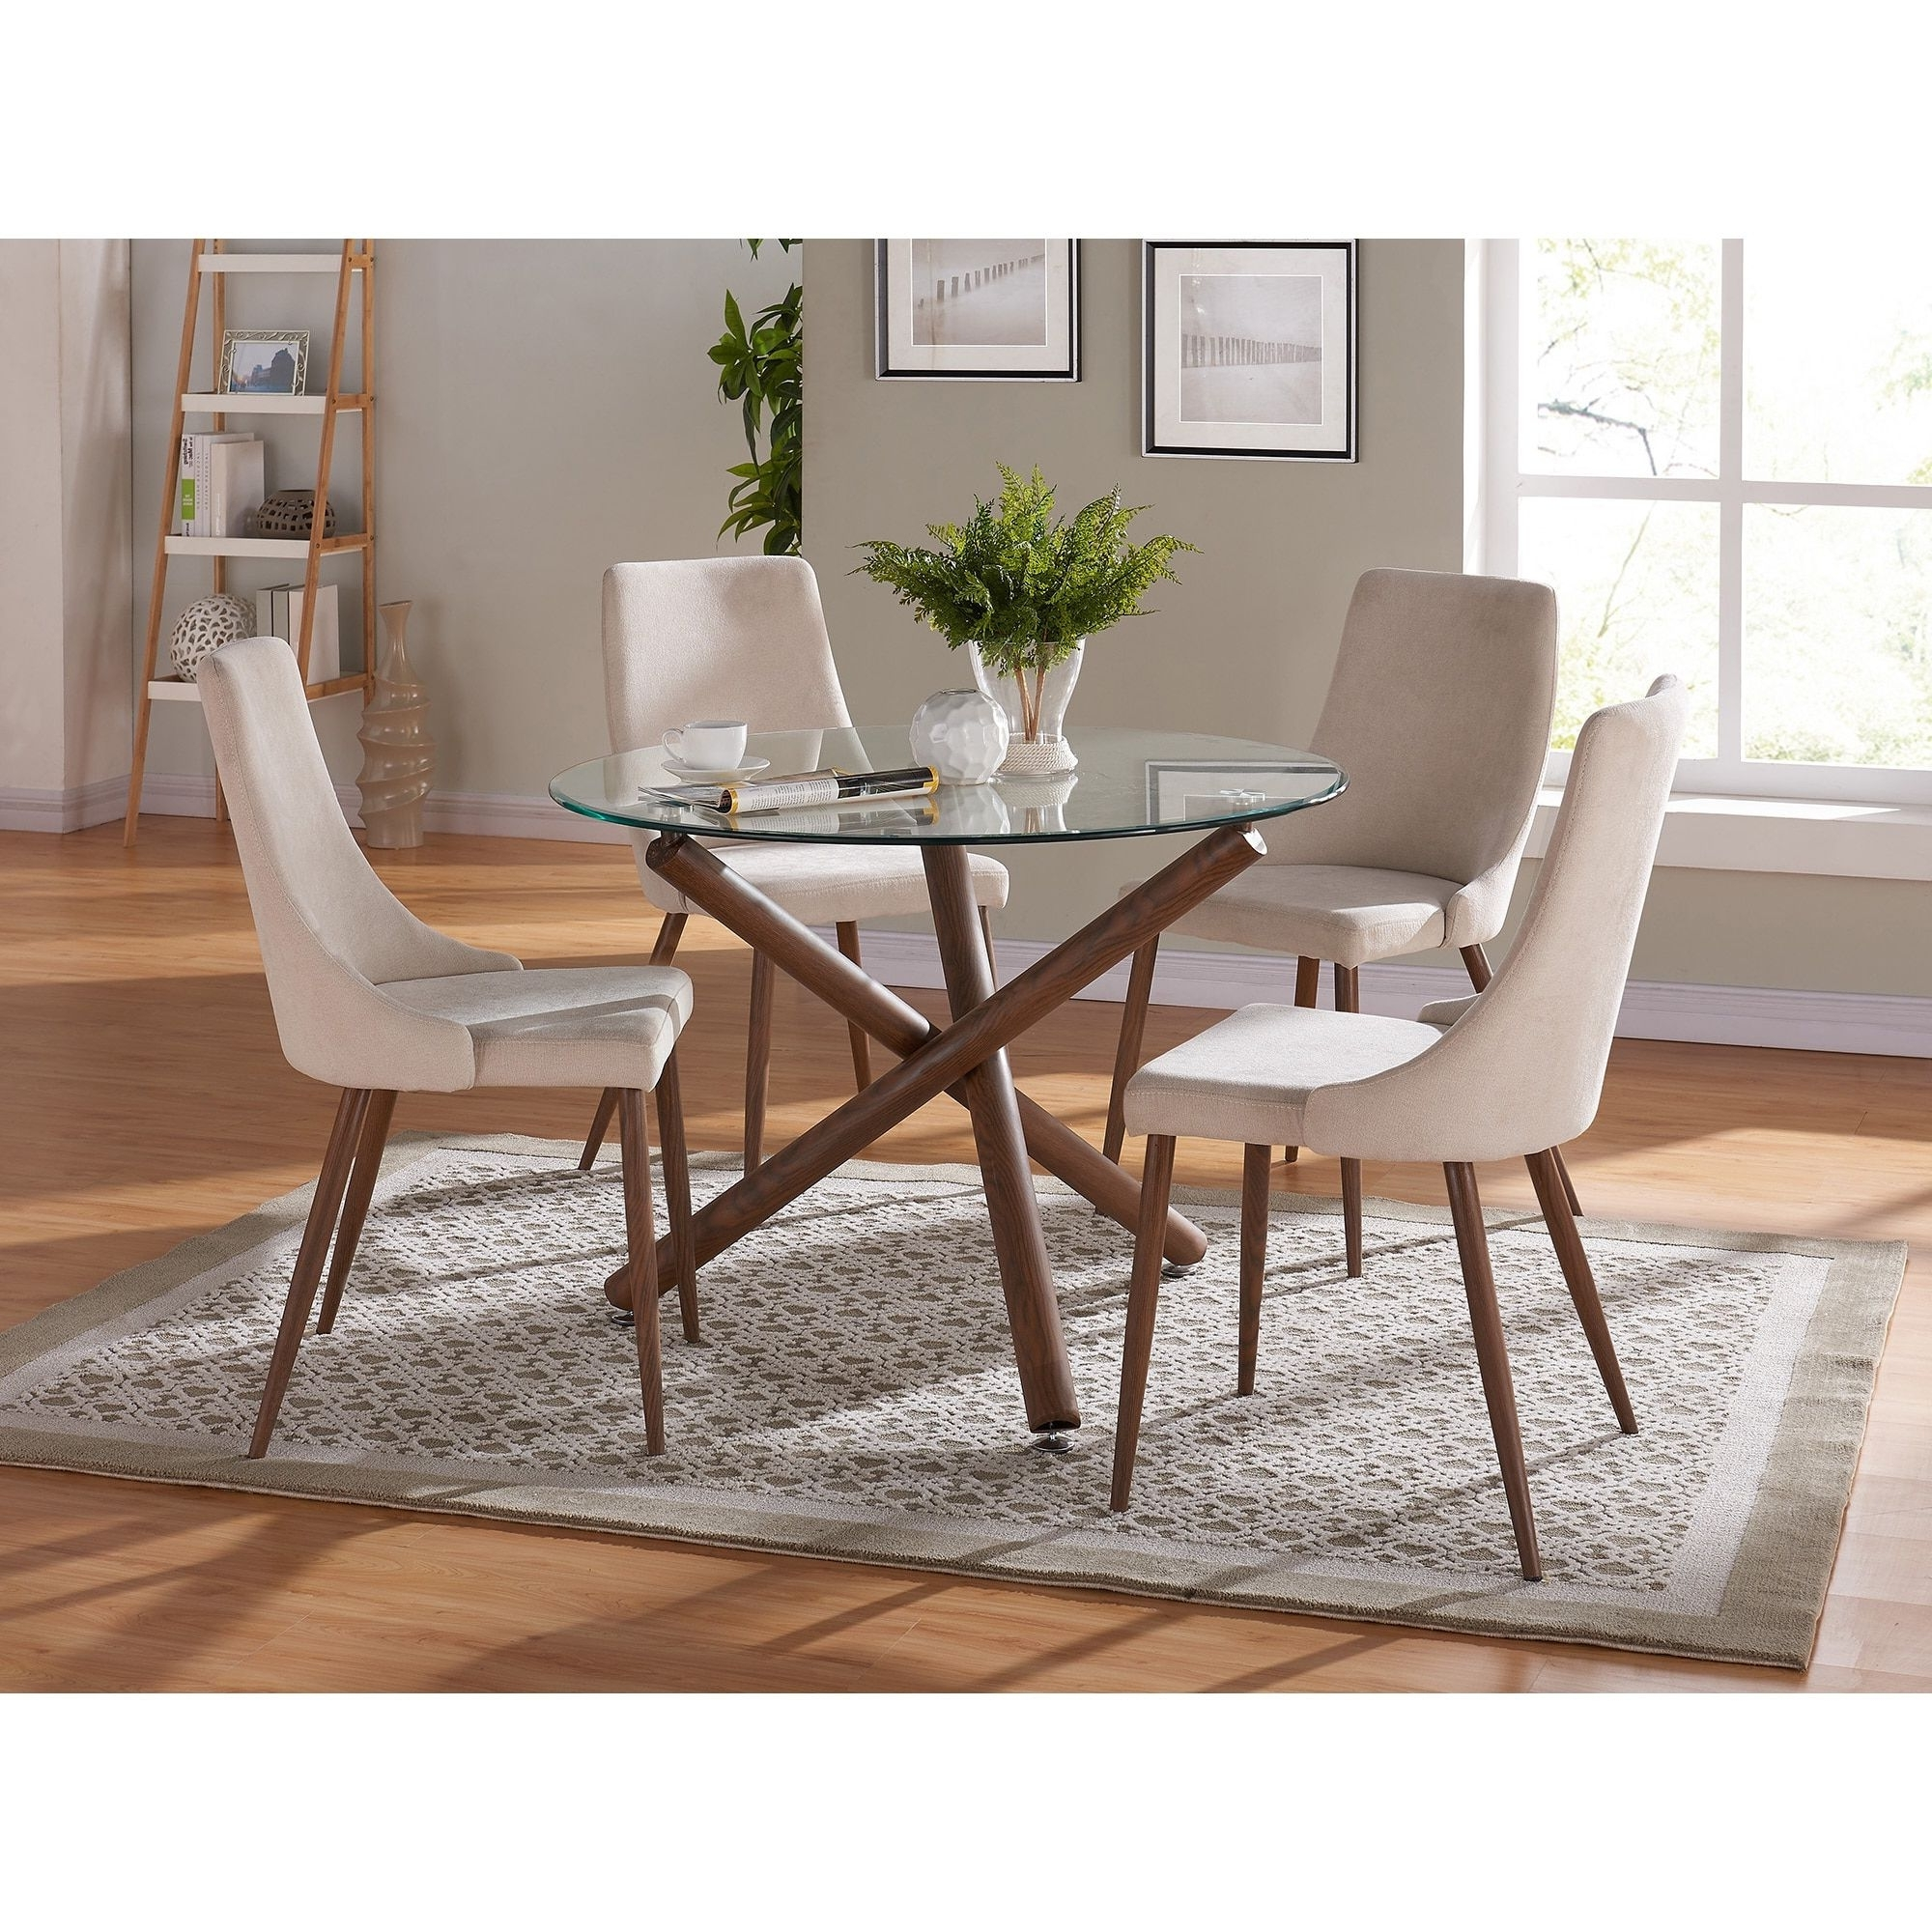 Dining Chairs, Fabric Dining Room Chairs: Make Mealtimes More Inside Current Fabric Dining Room Chairs (Gallery 21 of 25)